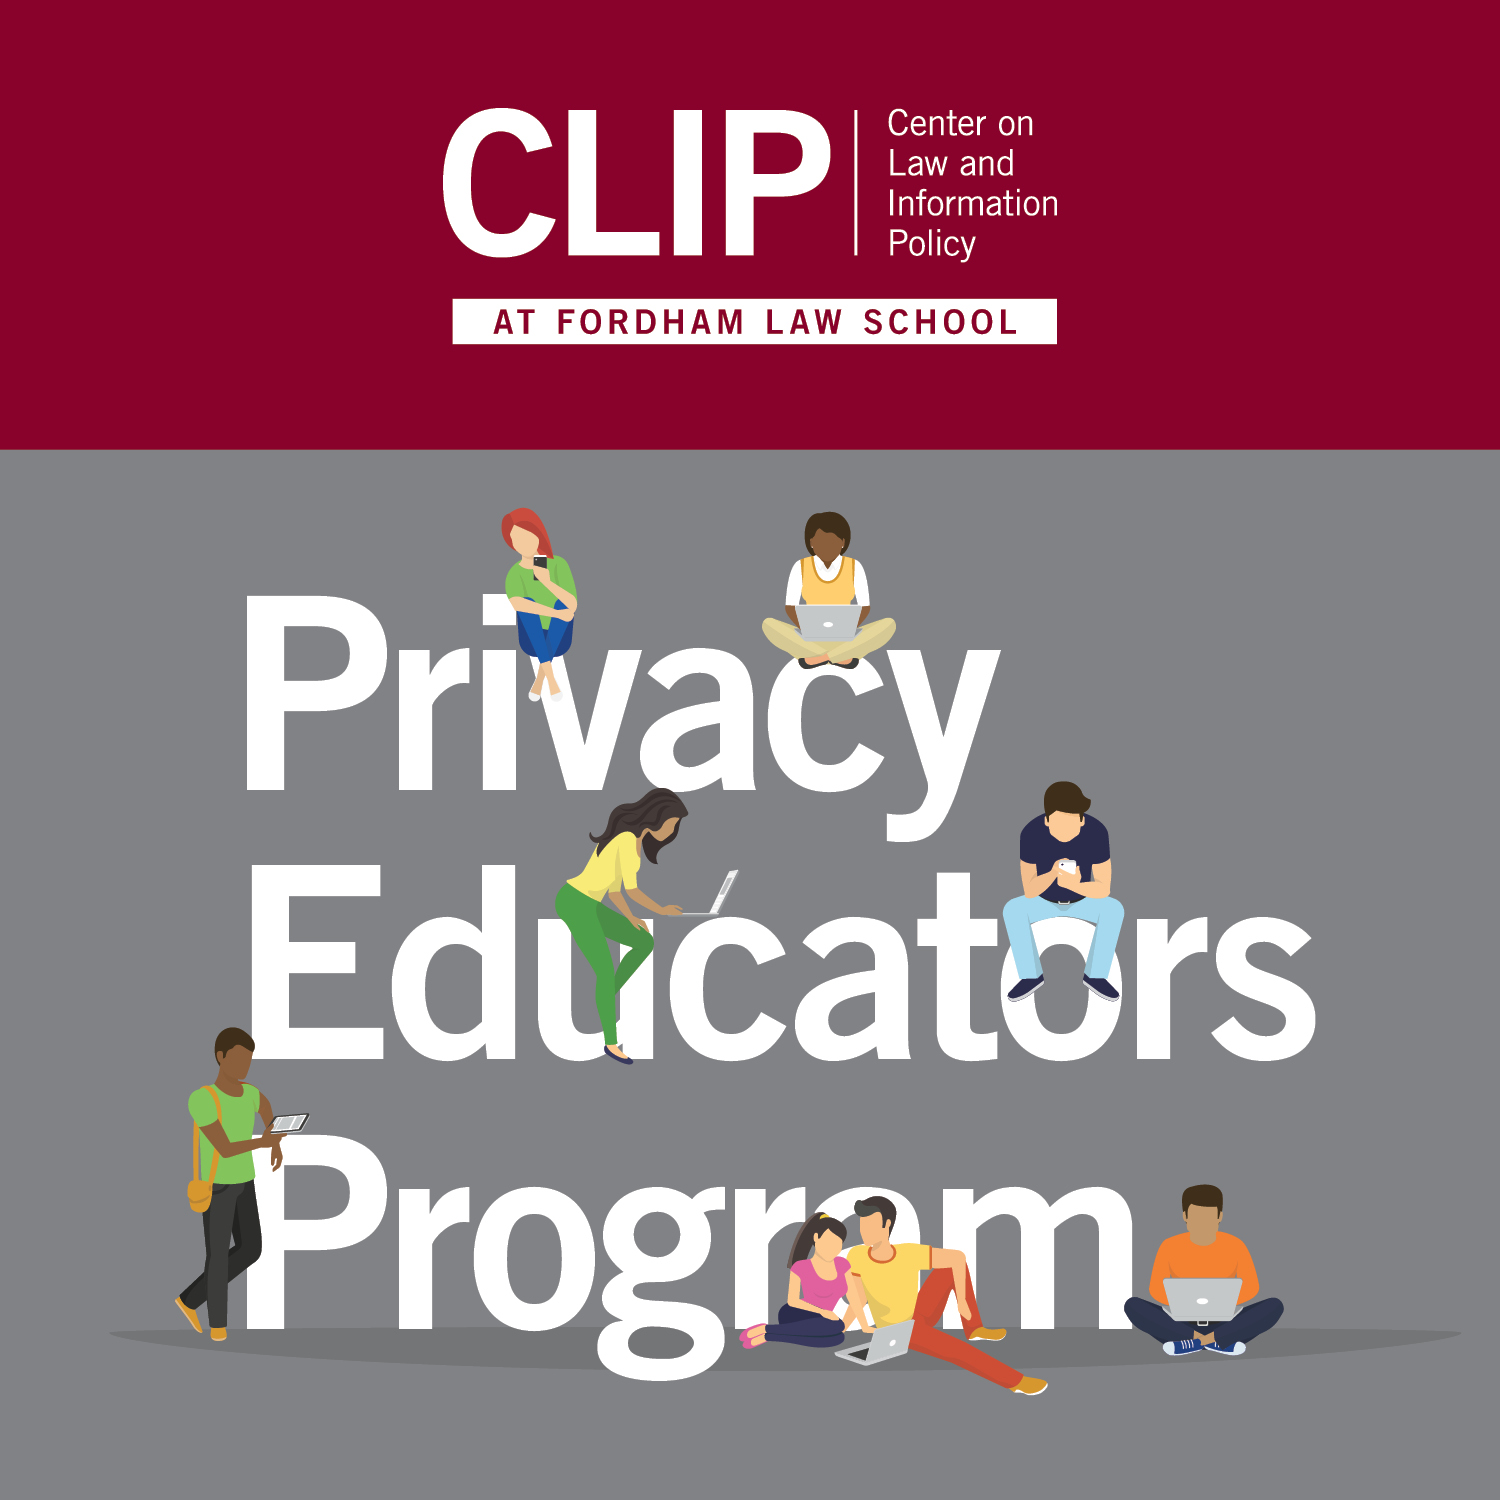 Privacy Educators Program